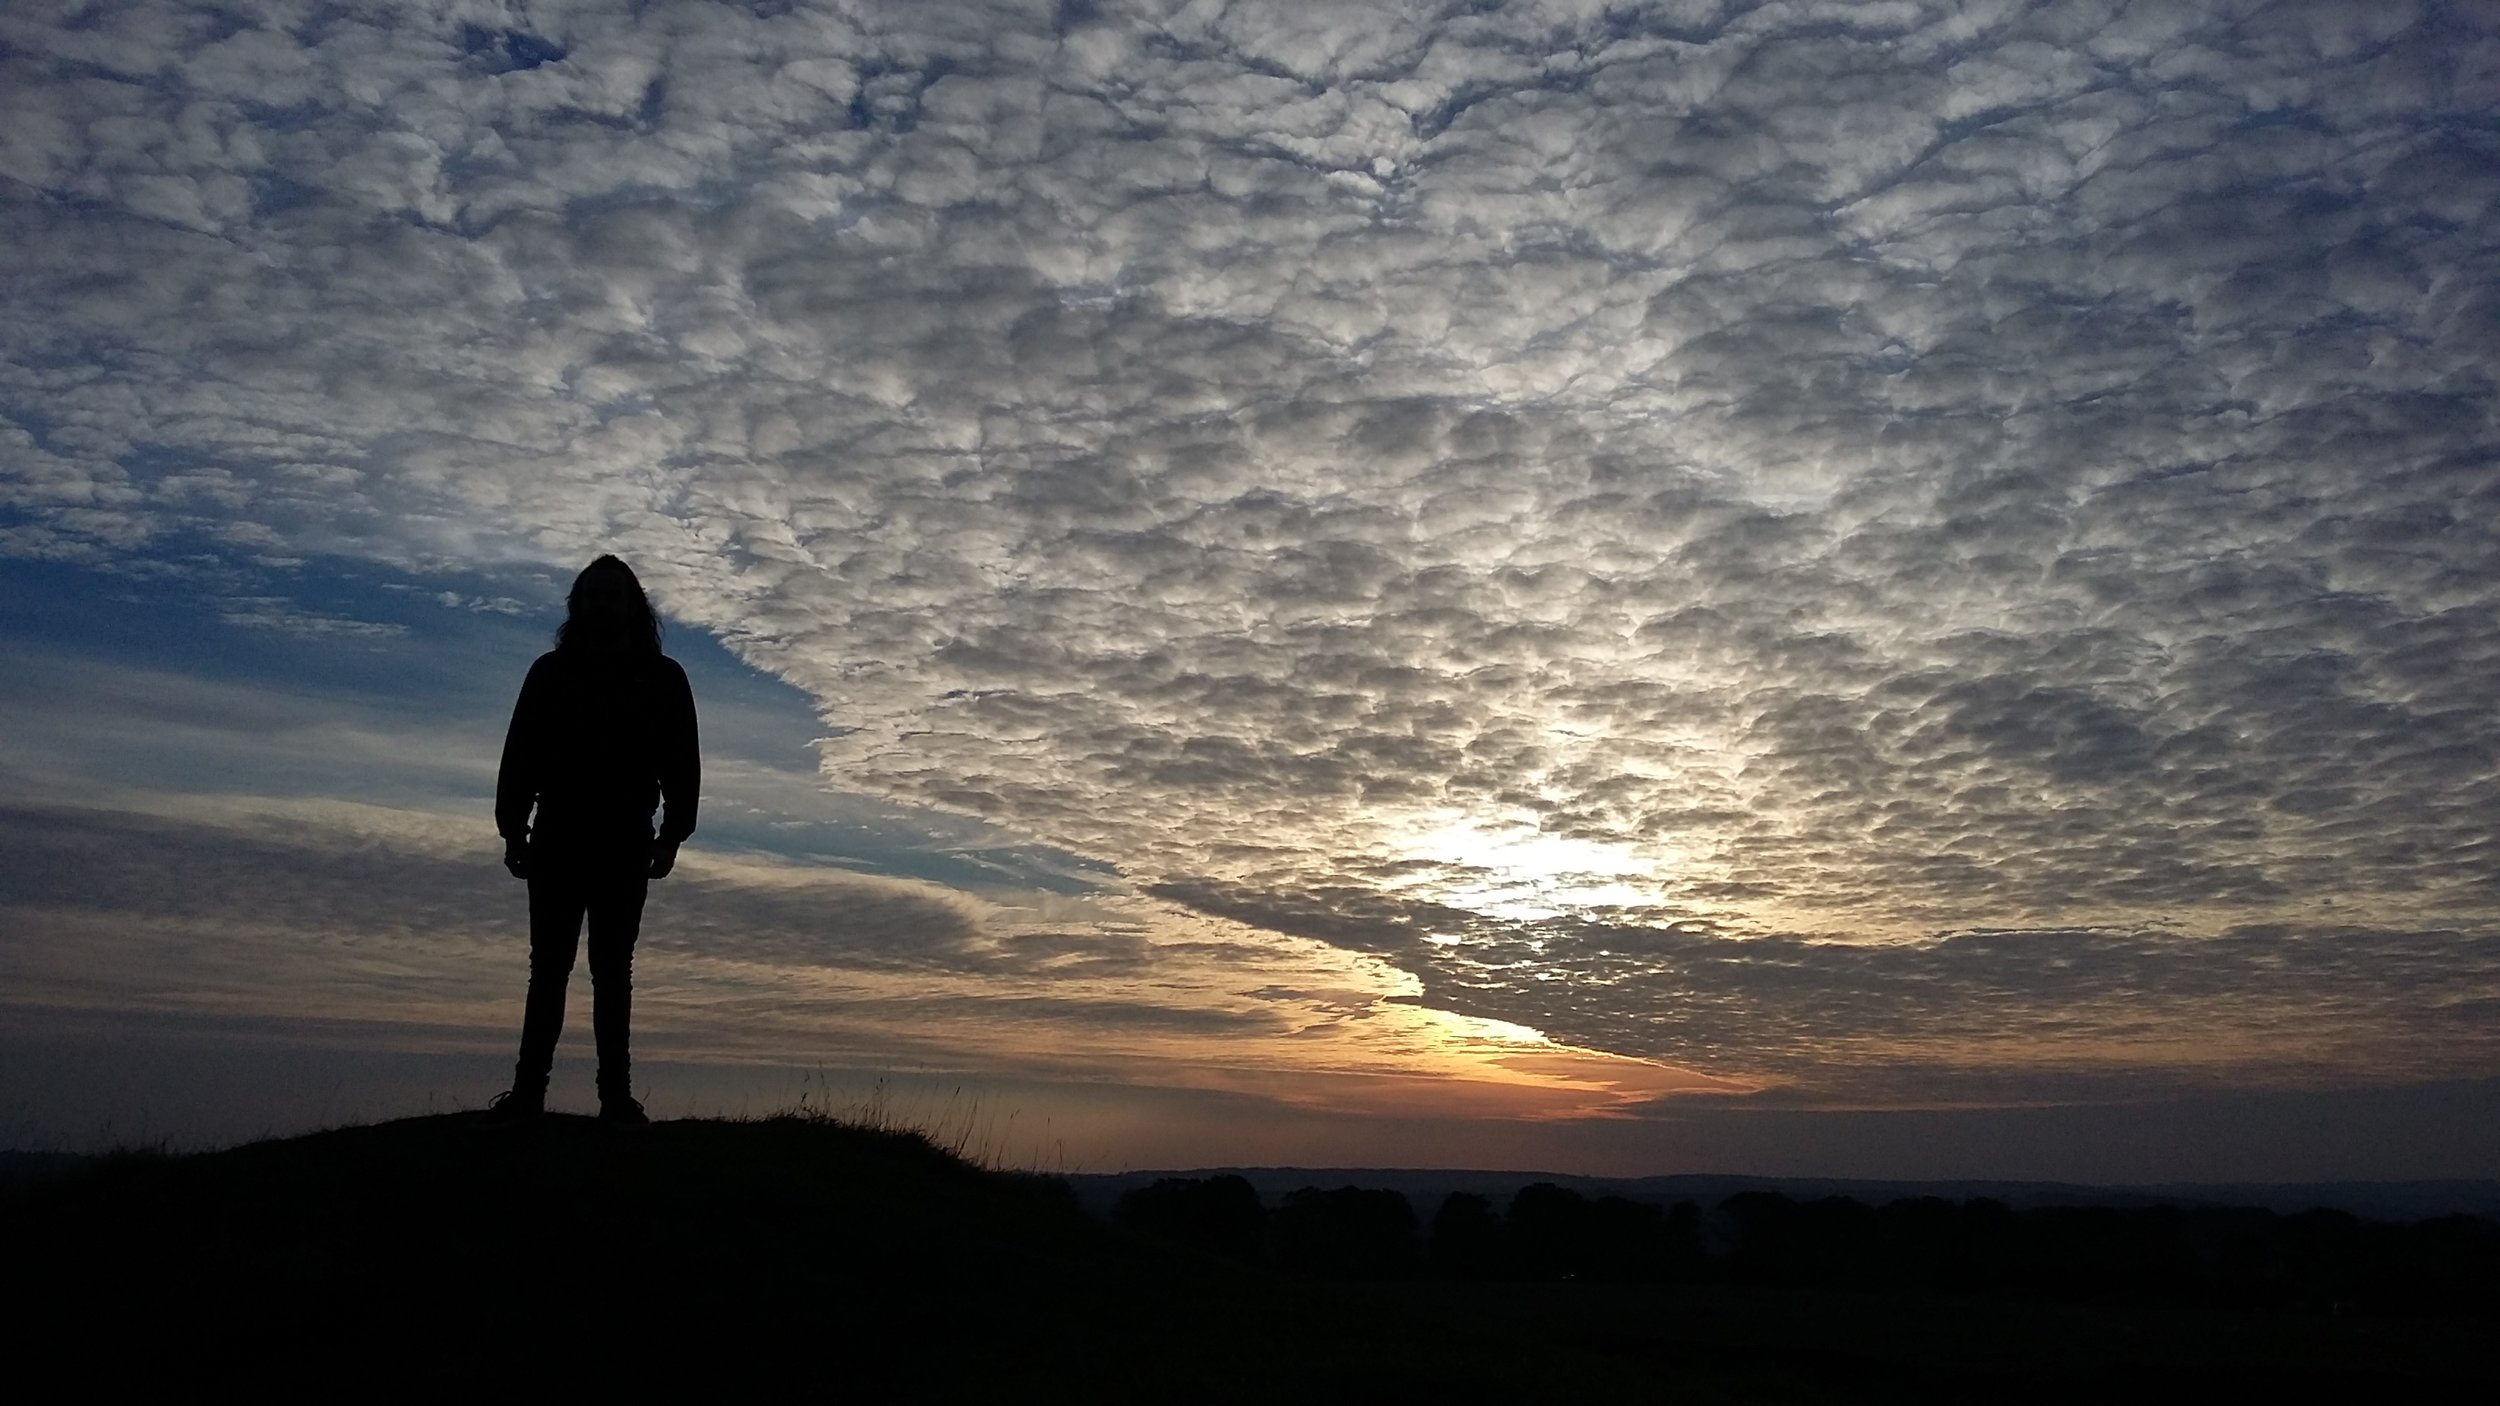 Astride the Iron Age hill fort of Badbury Rings, Dorset, 2015